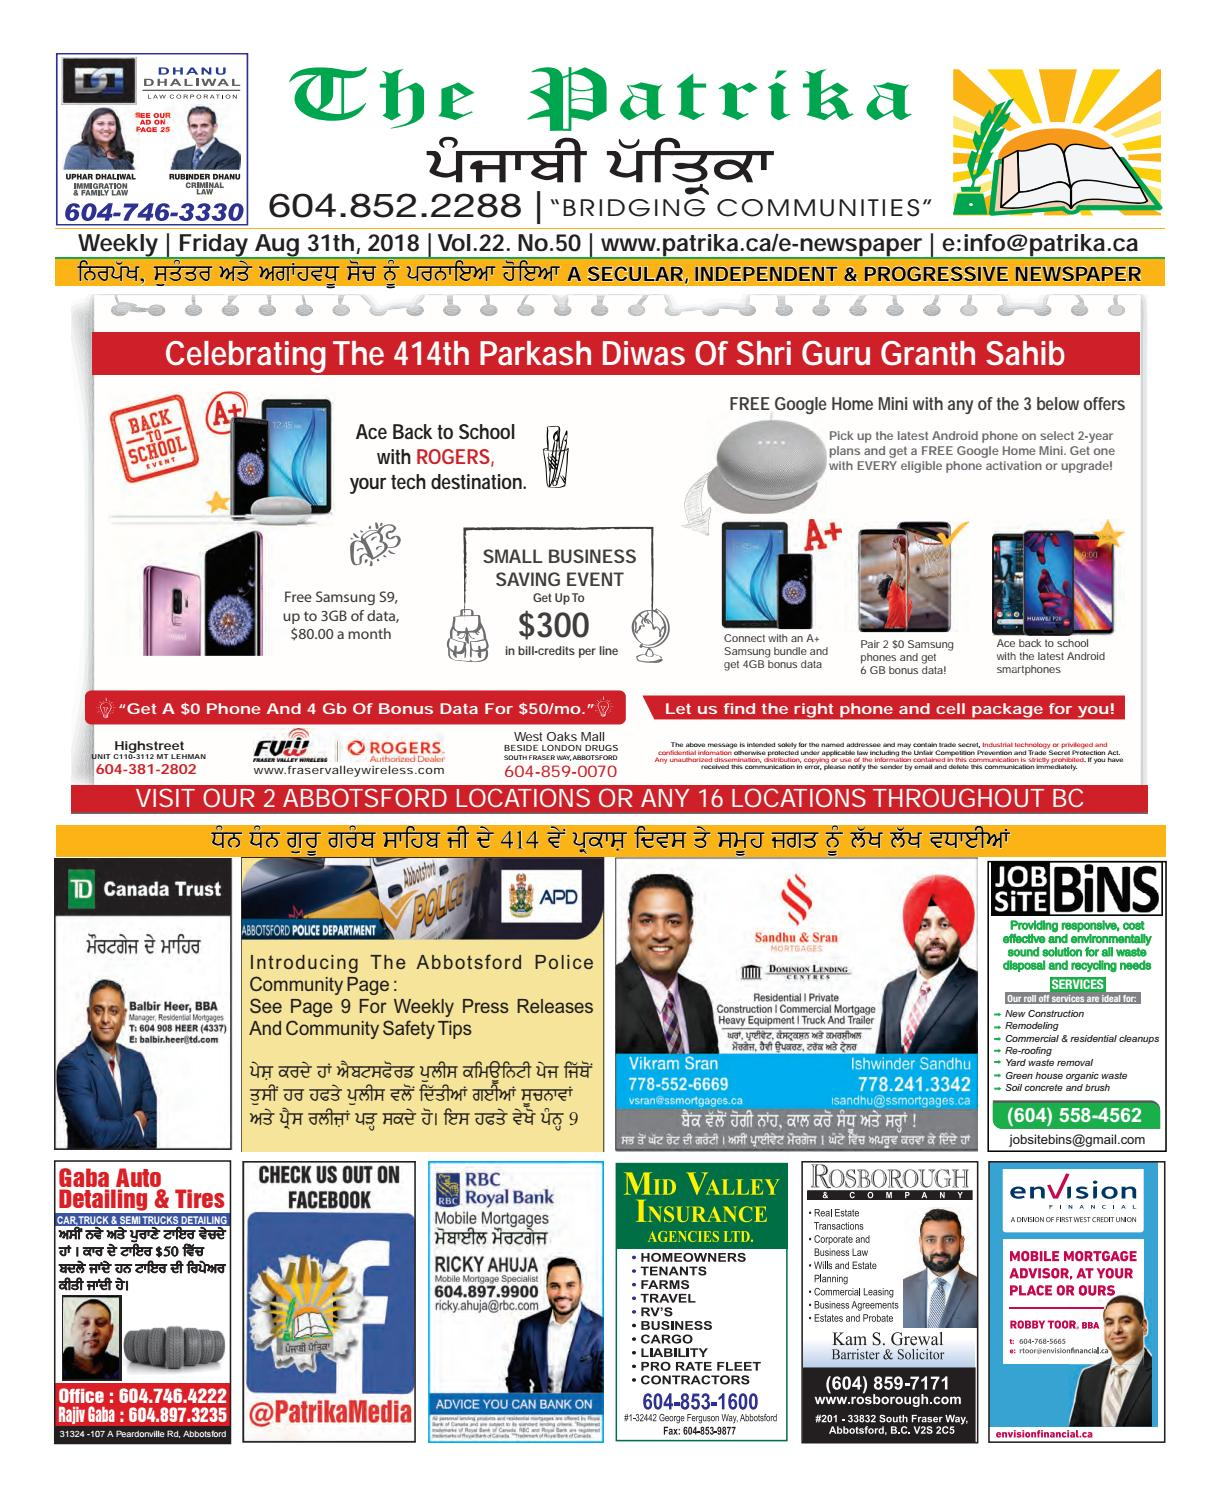 Smgr Yahoo Finance : yahoo, finance, August, 31st,, Punjabi, Patrika, Media, Issuu